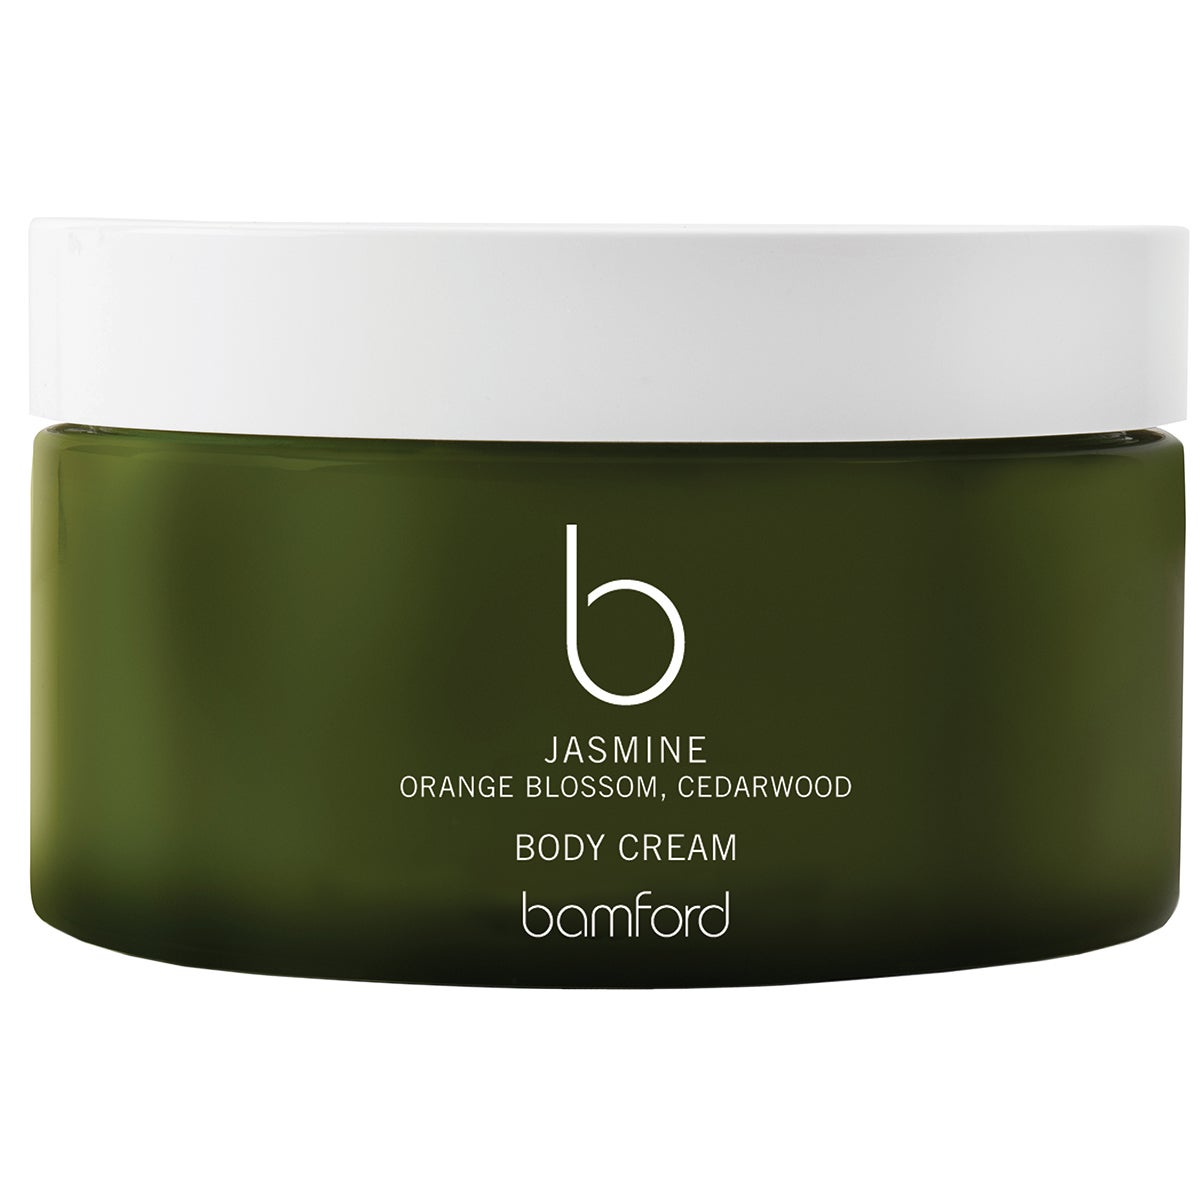 Bamford Jasmine Body Cream